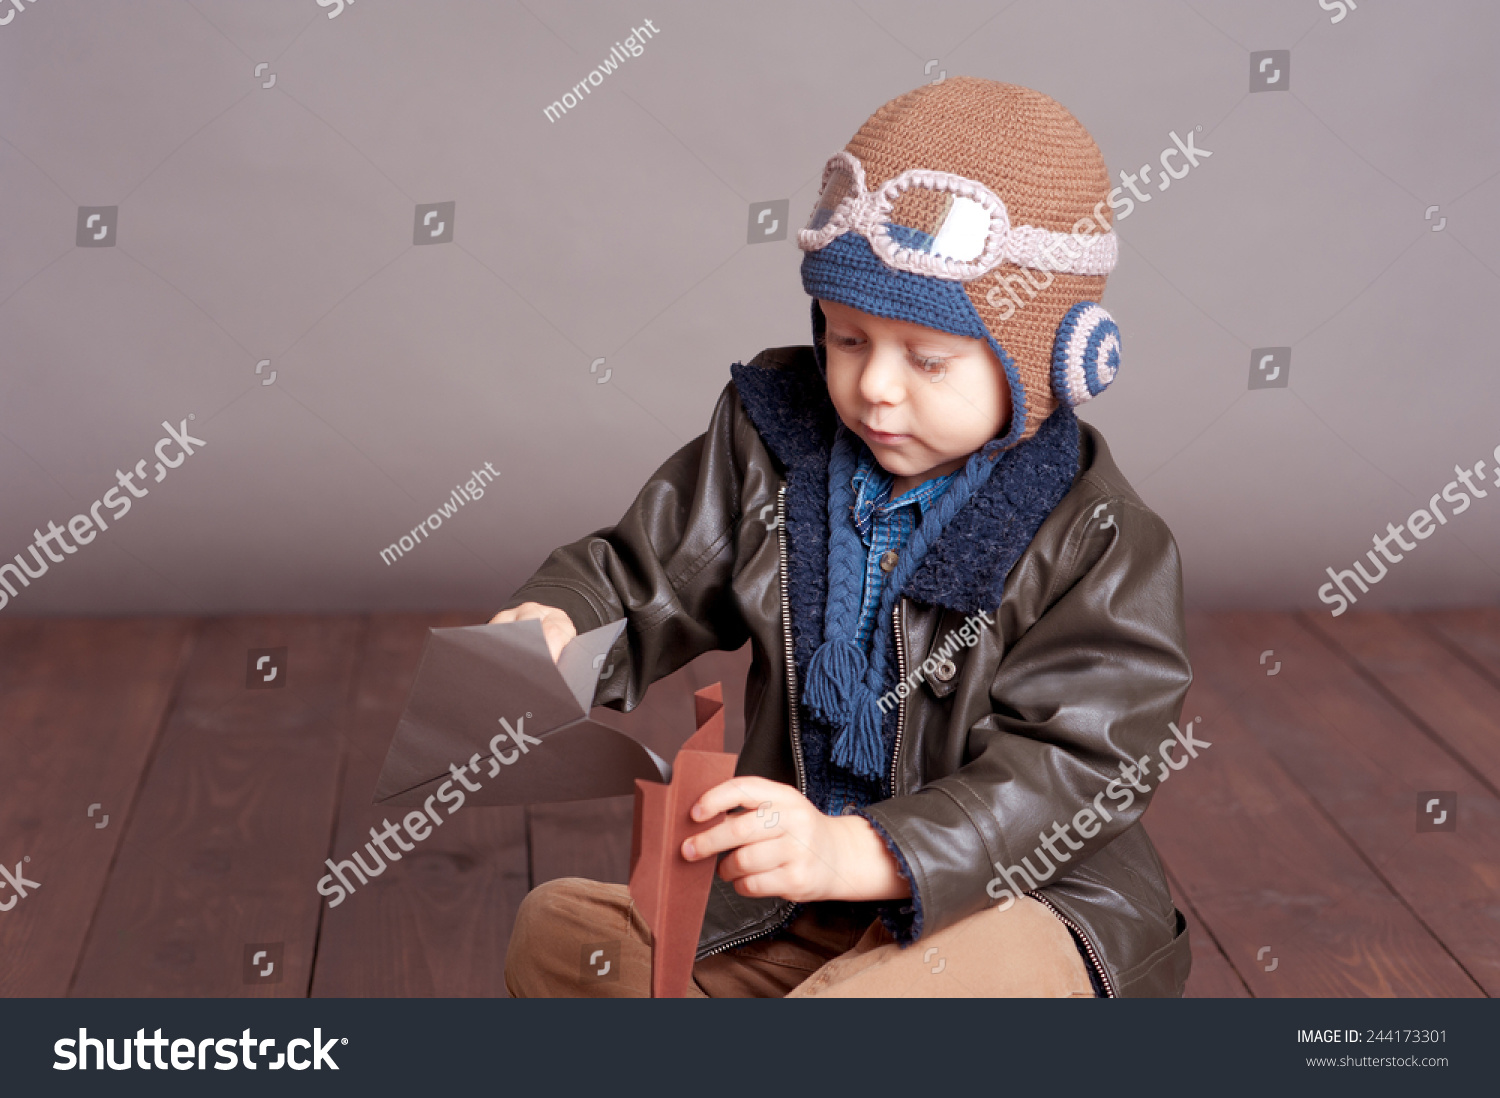 9b0168067f5 Cute baby boy wearing stylish leather jacket and aviator cap over gray.  Playing with paper